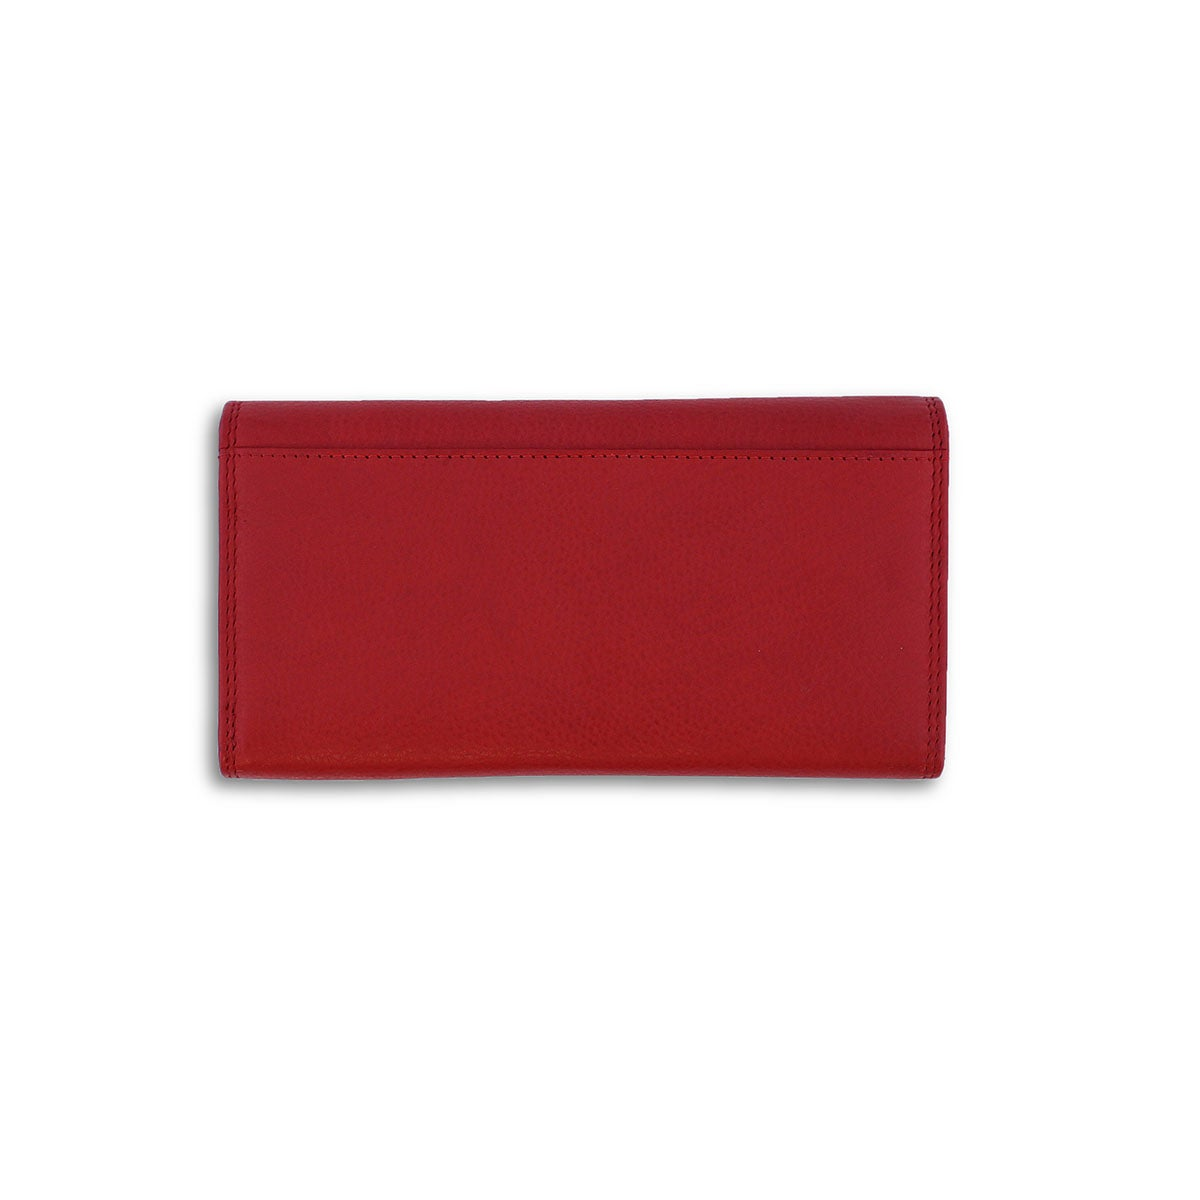 Lds red leather RFID wallet